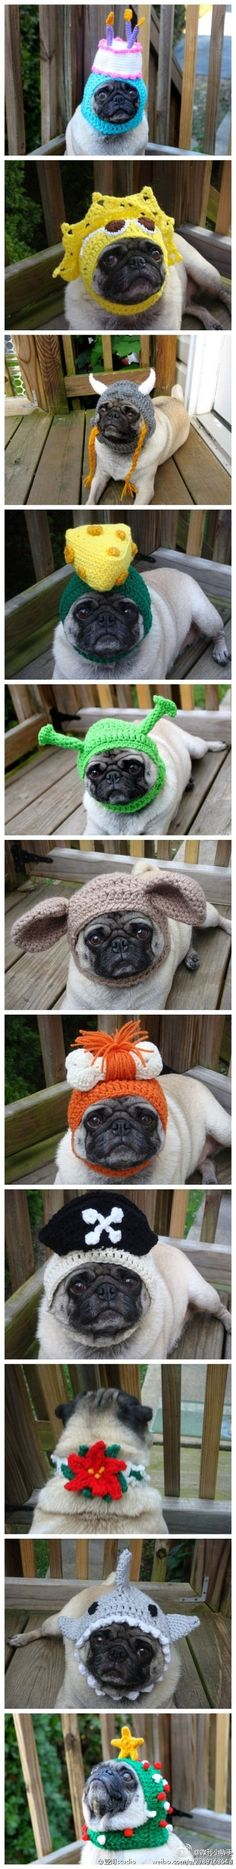 A pug of many hats  --He just looks like he's thinking...Put down the knitting needles and back away from them.